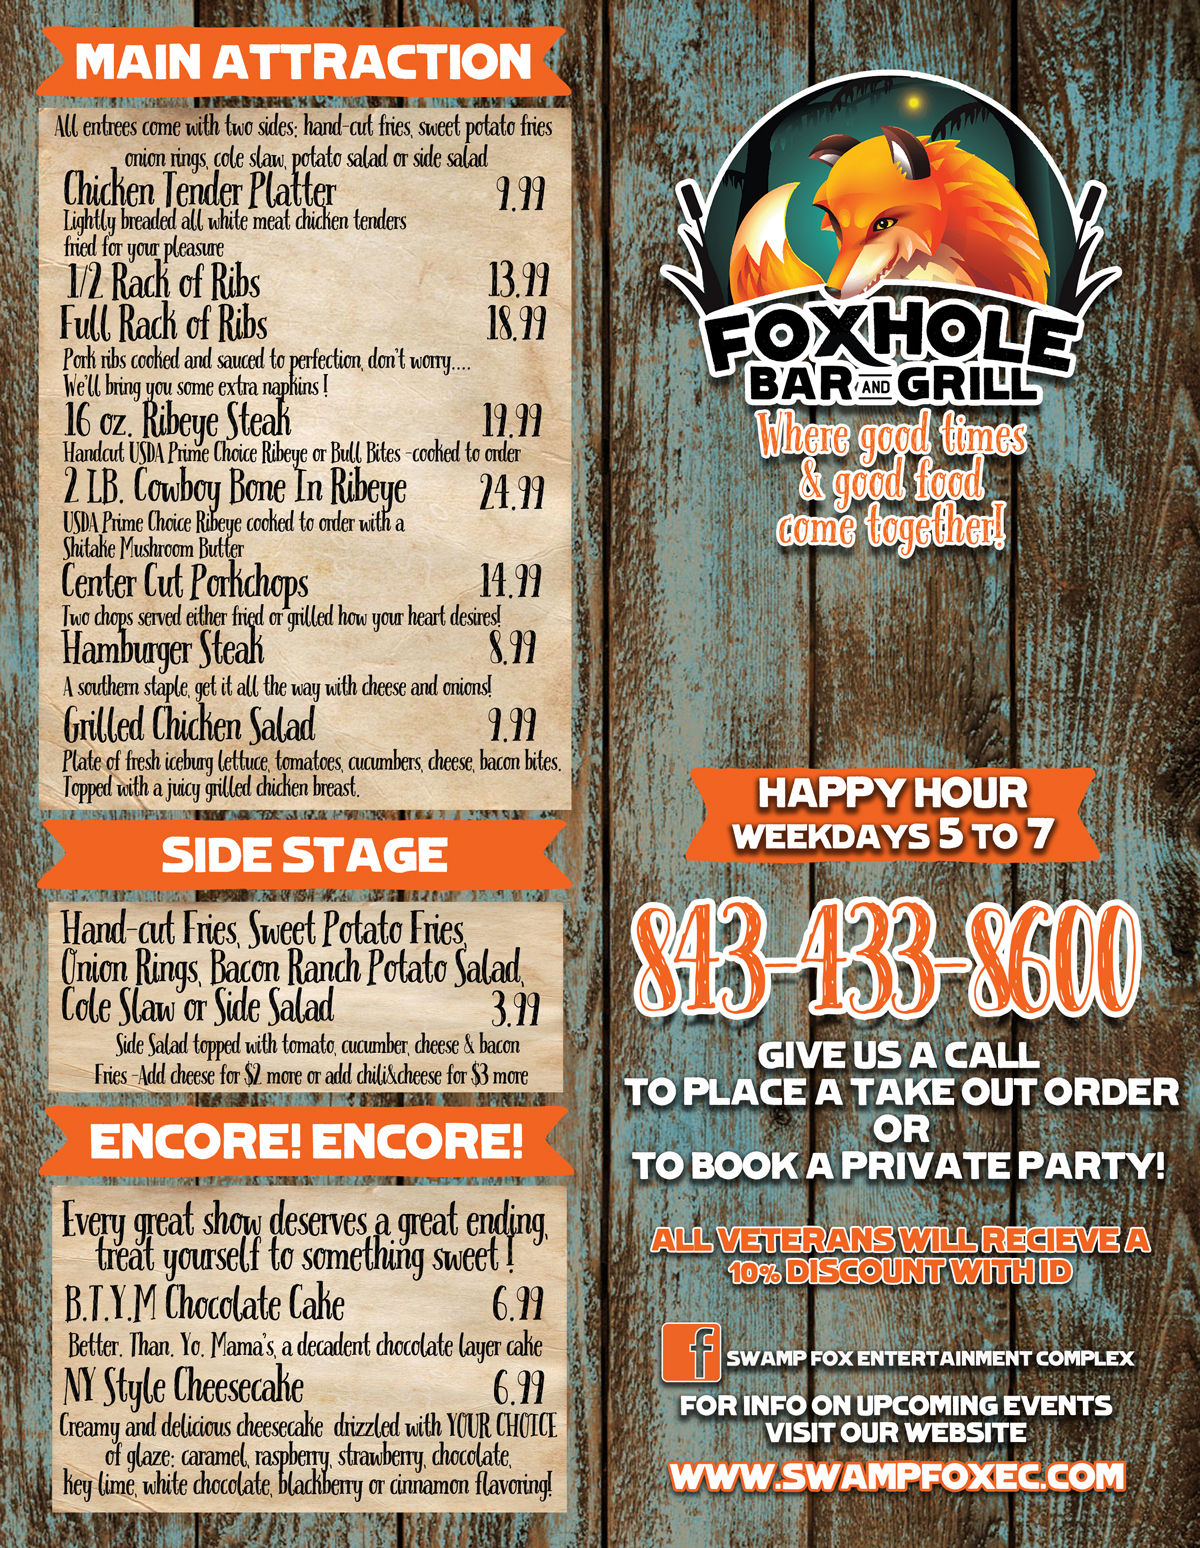 Fox Hole Bar and Grill Menu 1